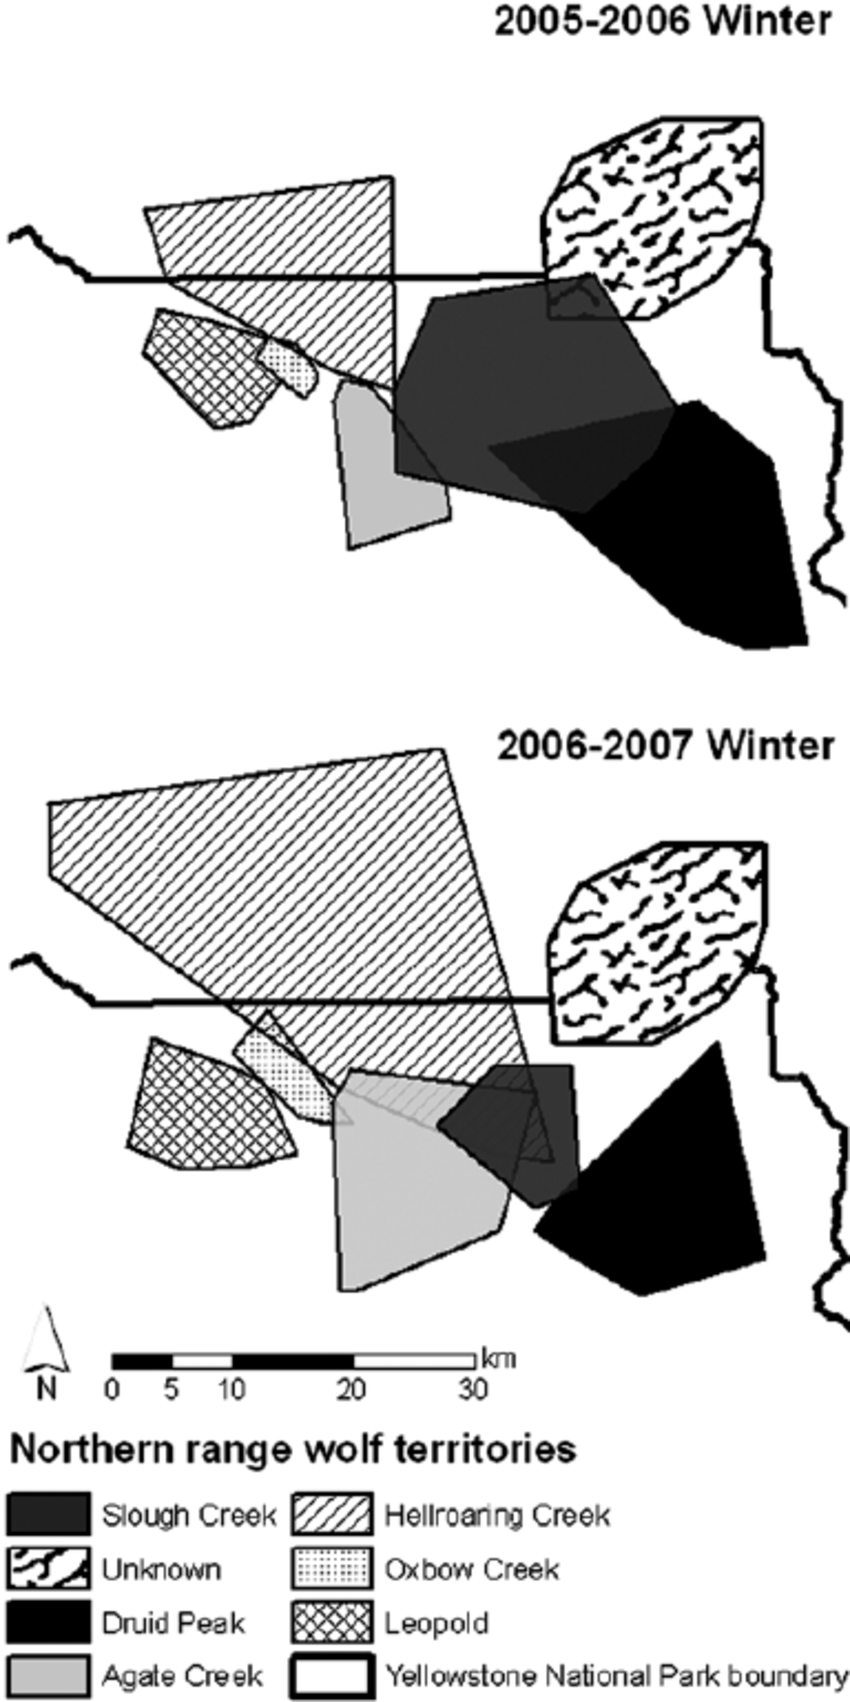 medium resolution of  winter territories of northern range wolf packs canis lupus before 2005 2006 and after 2006 2007 the den attack that reduced the size of the slough